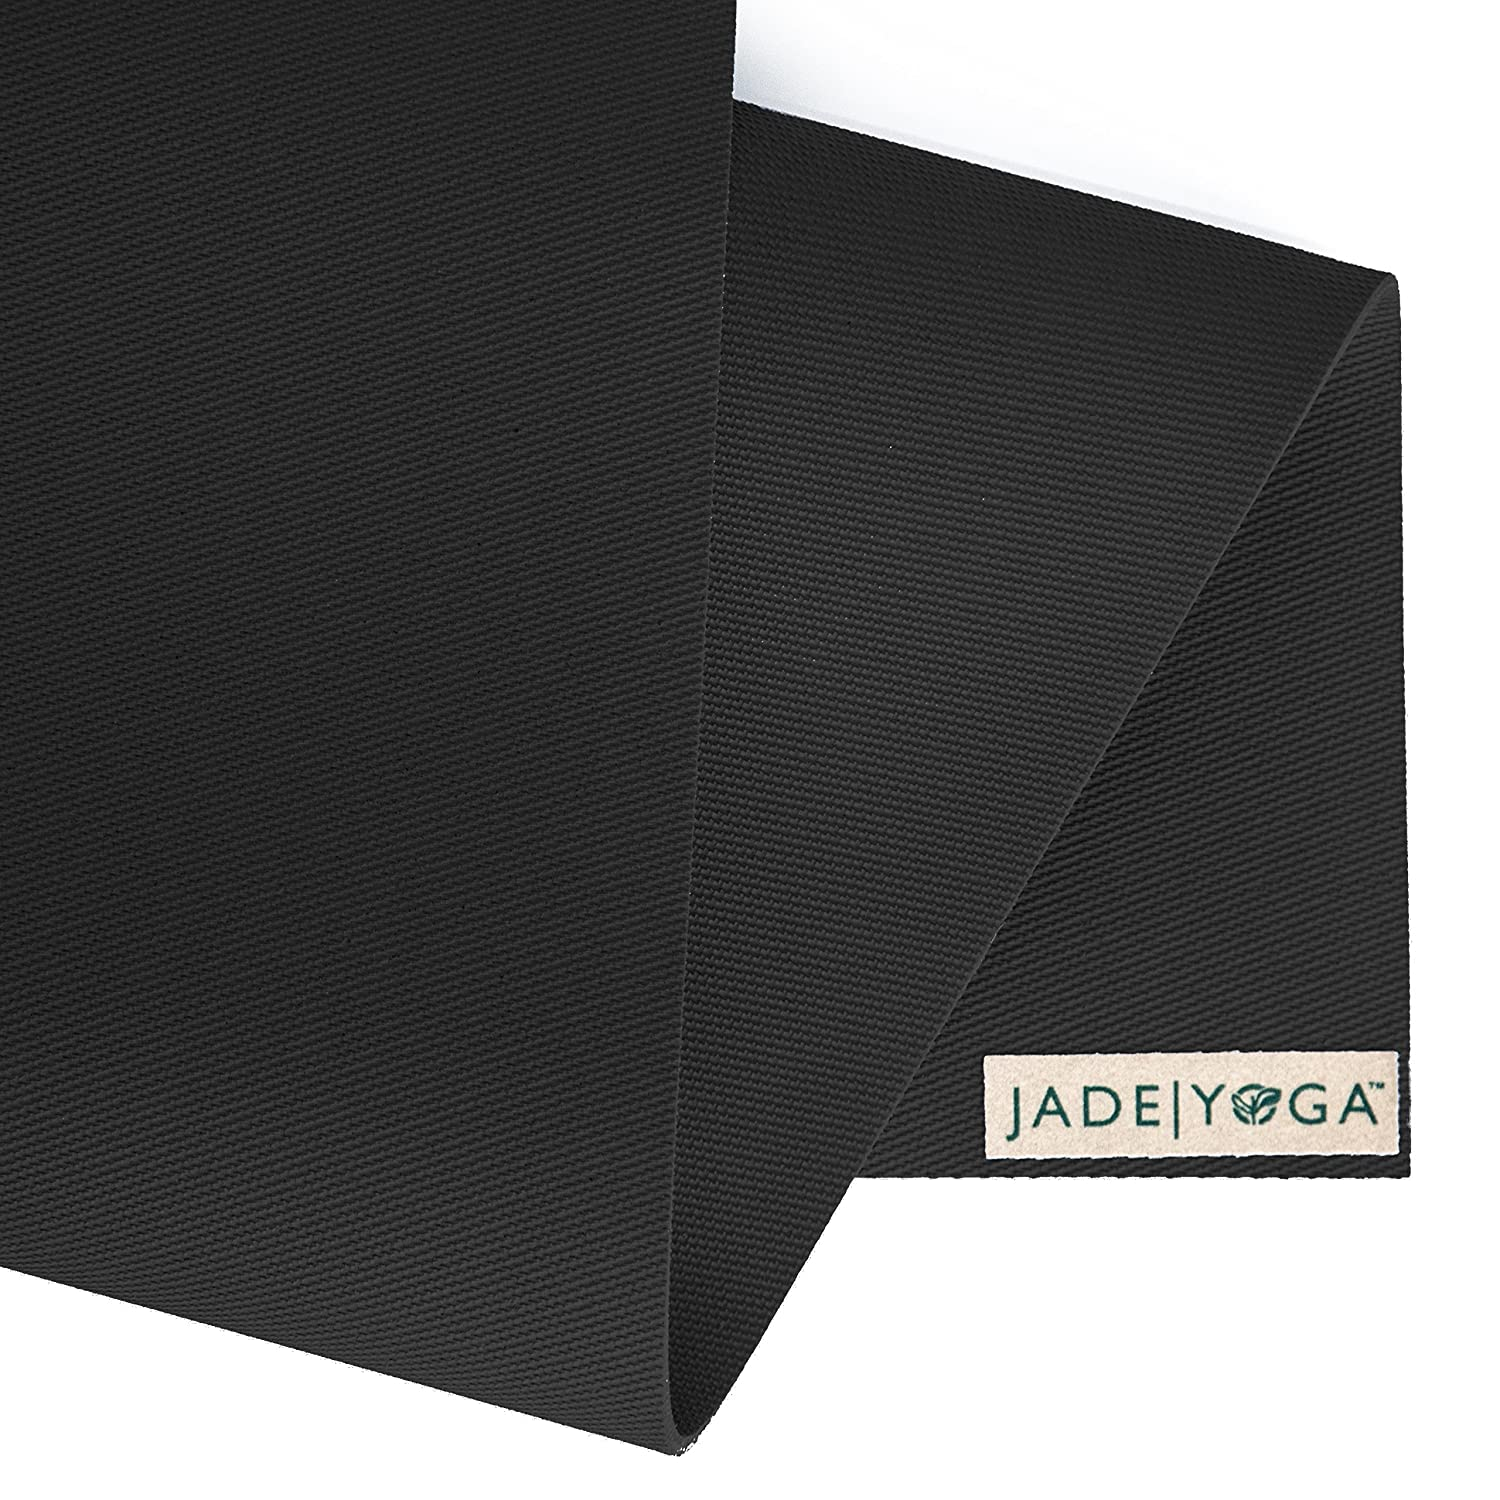 canada mat jade prev thickness yoga jadeyoga fusion shop